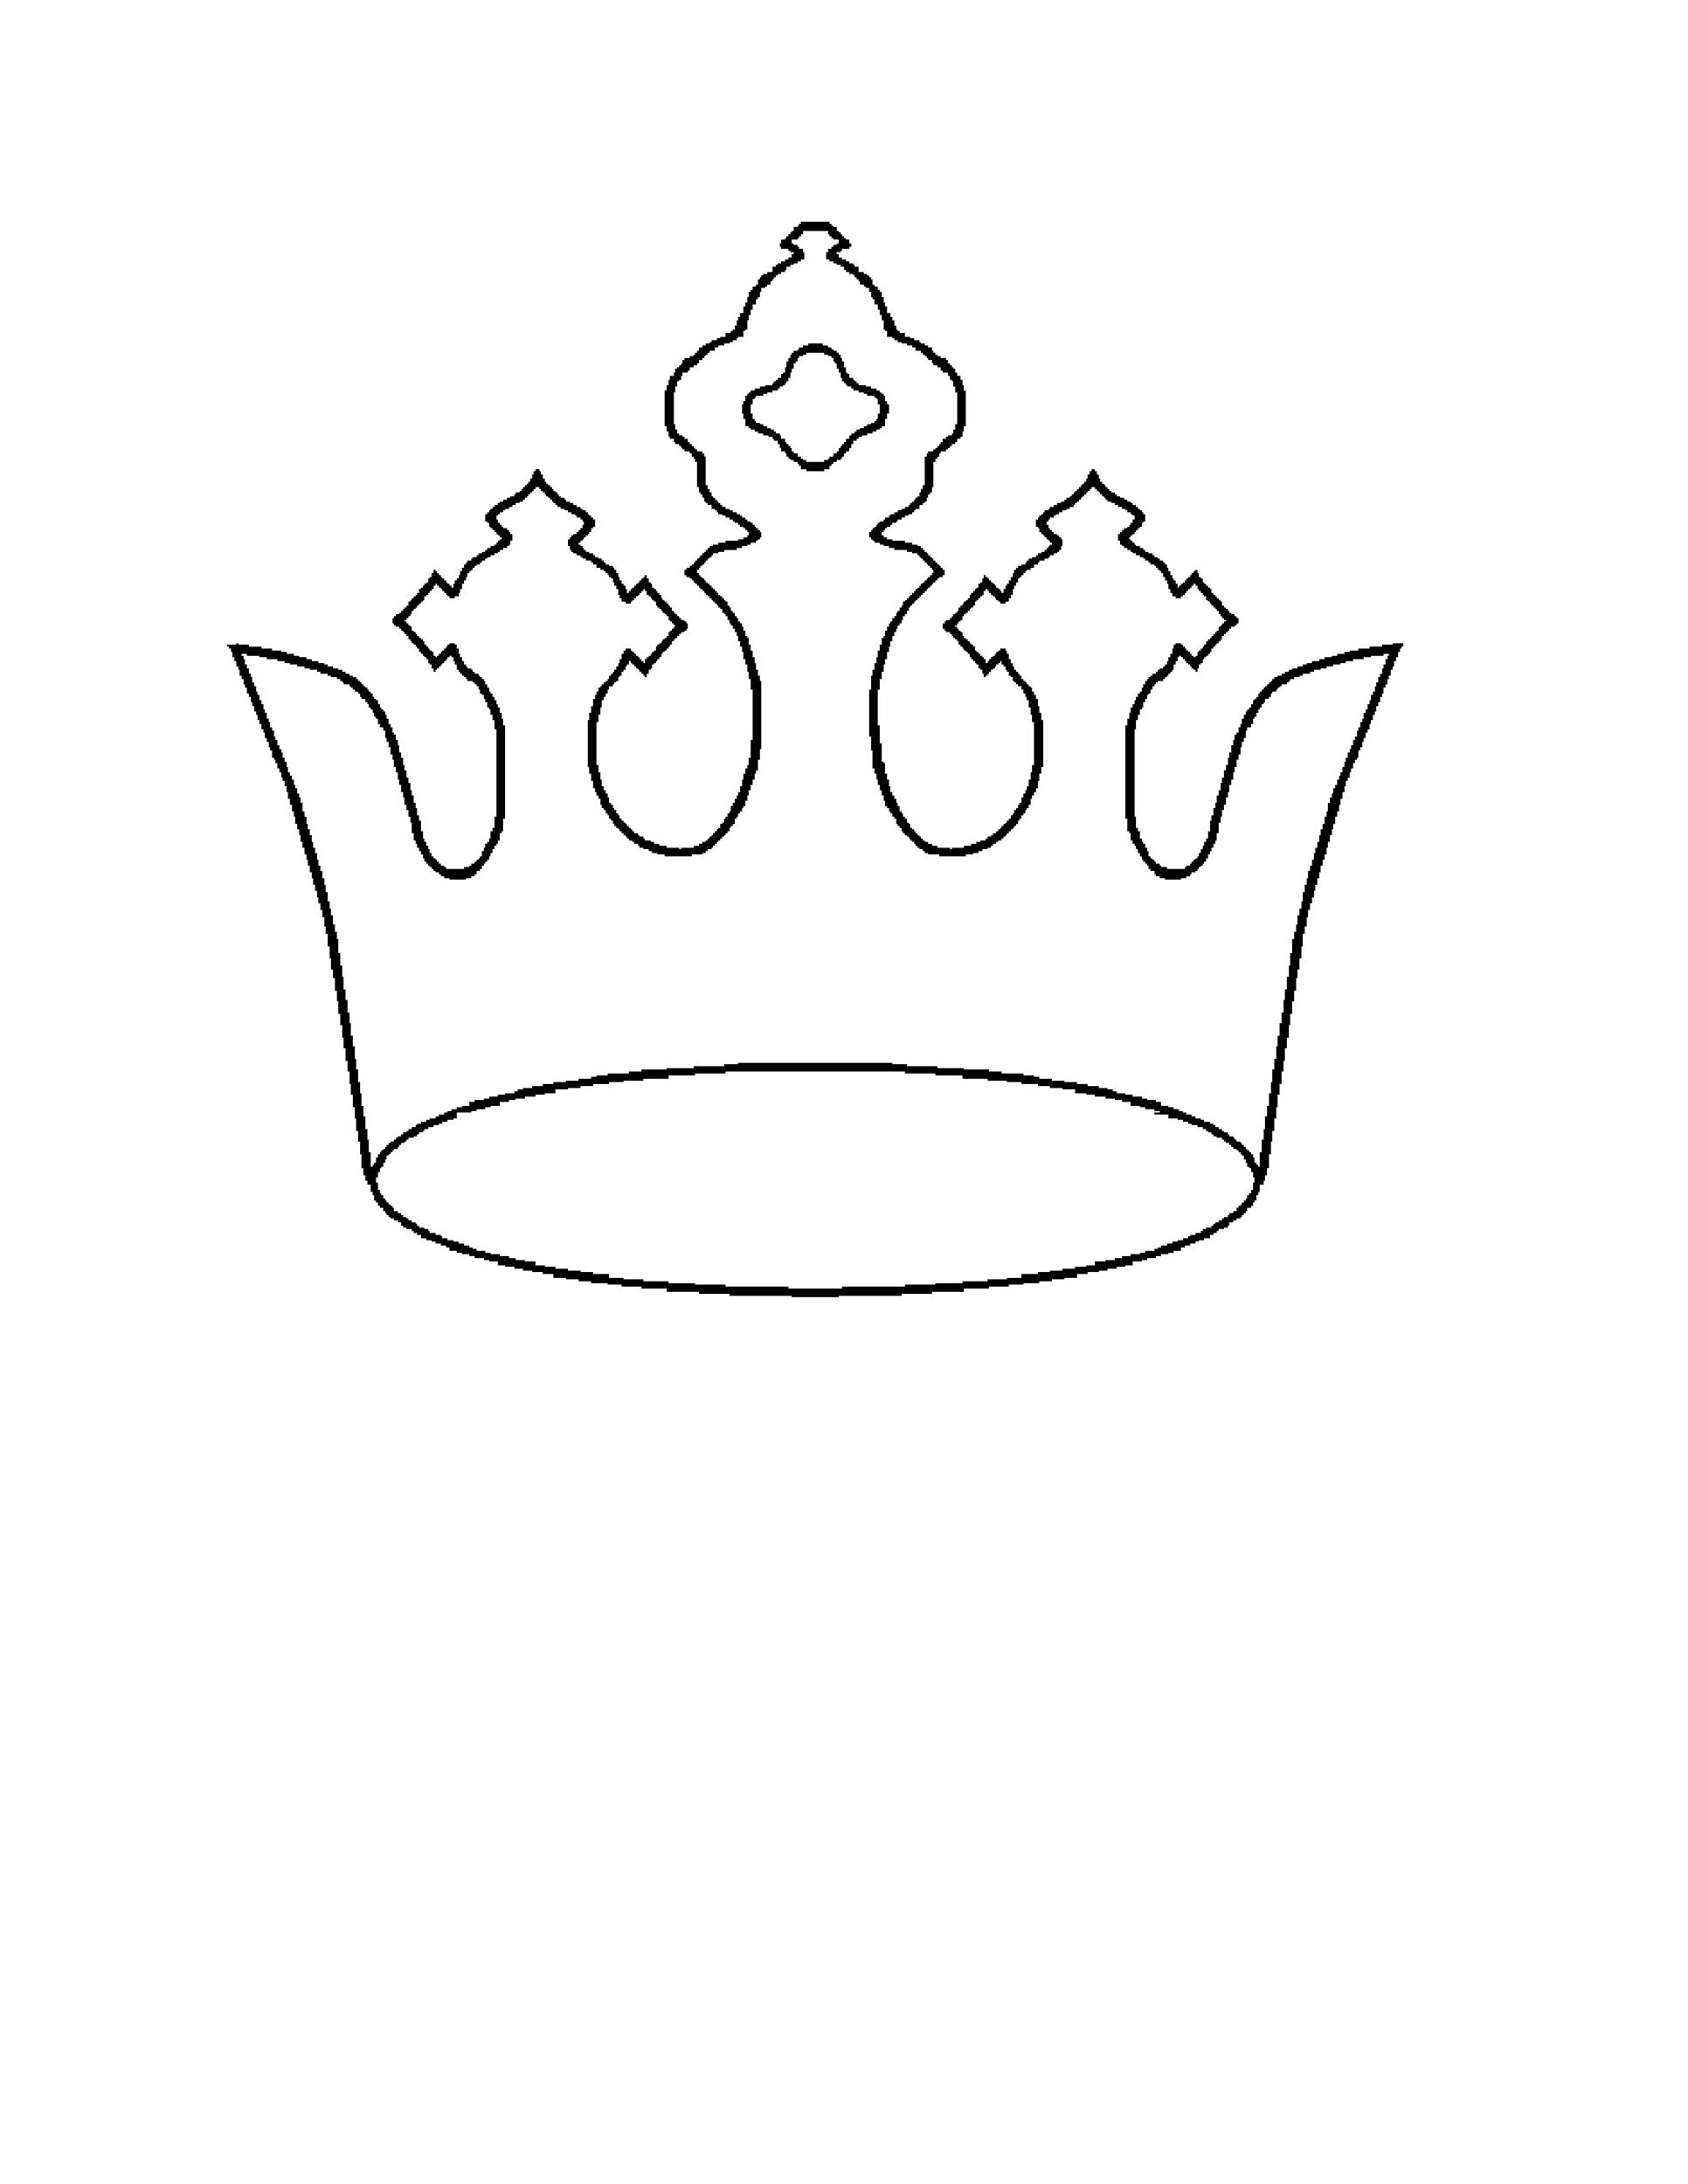 45 Free Paper Crown Templates - Template Lab - crown template